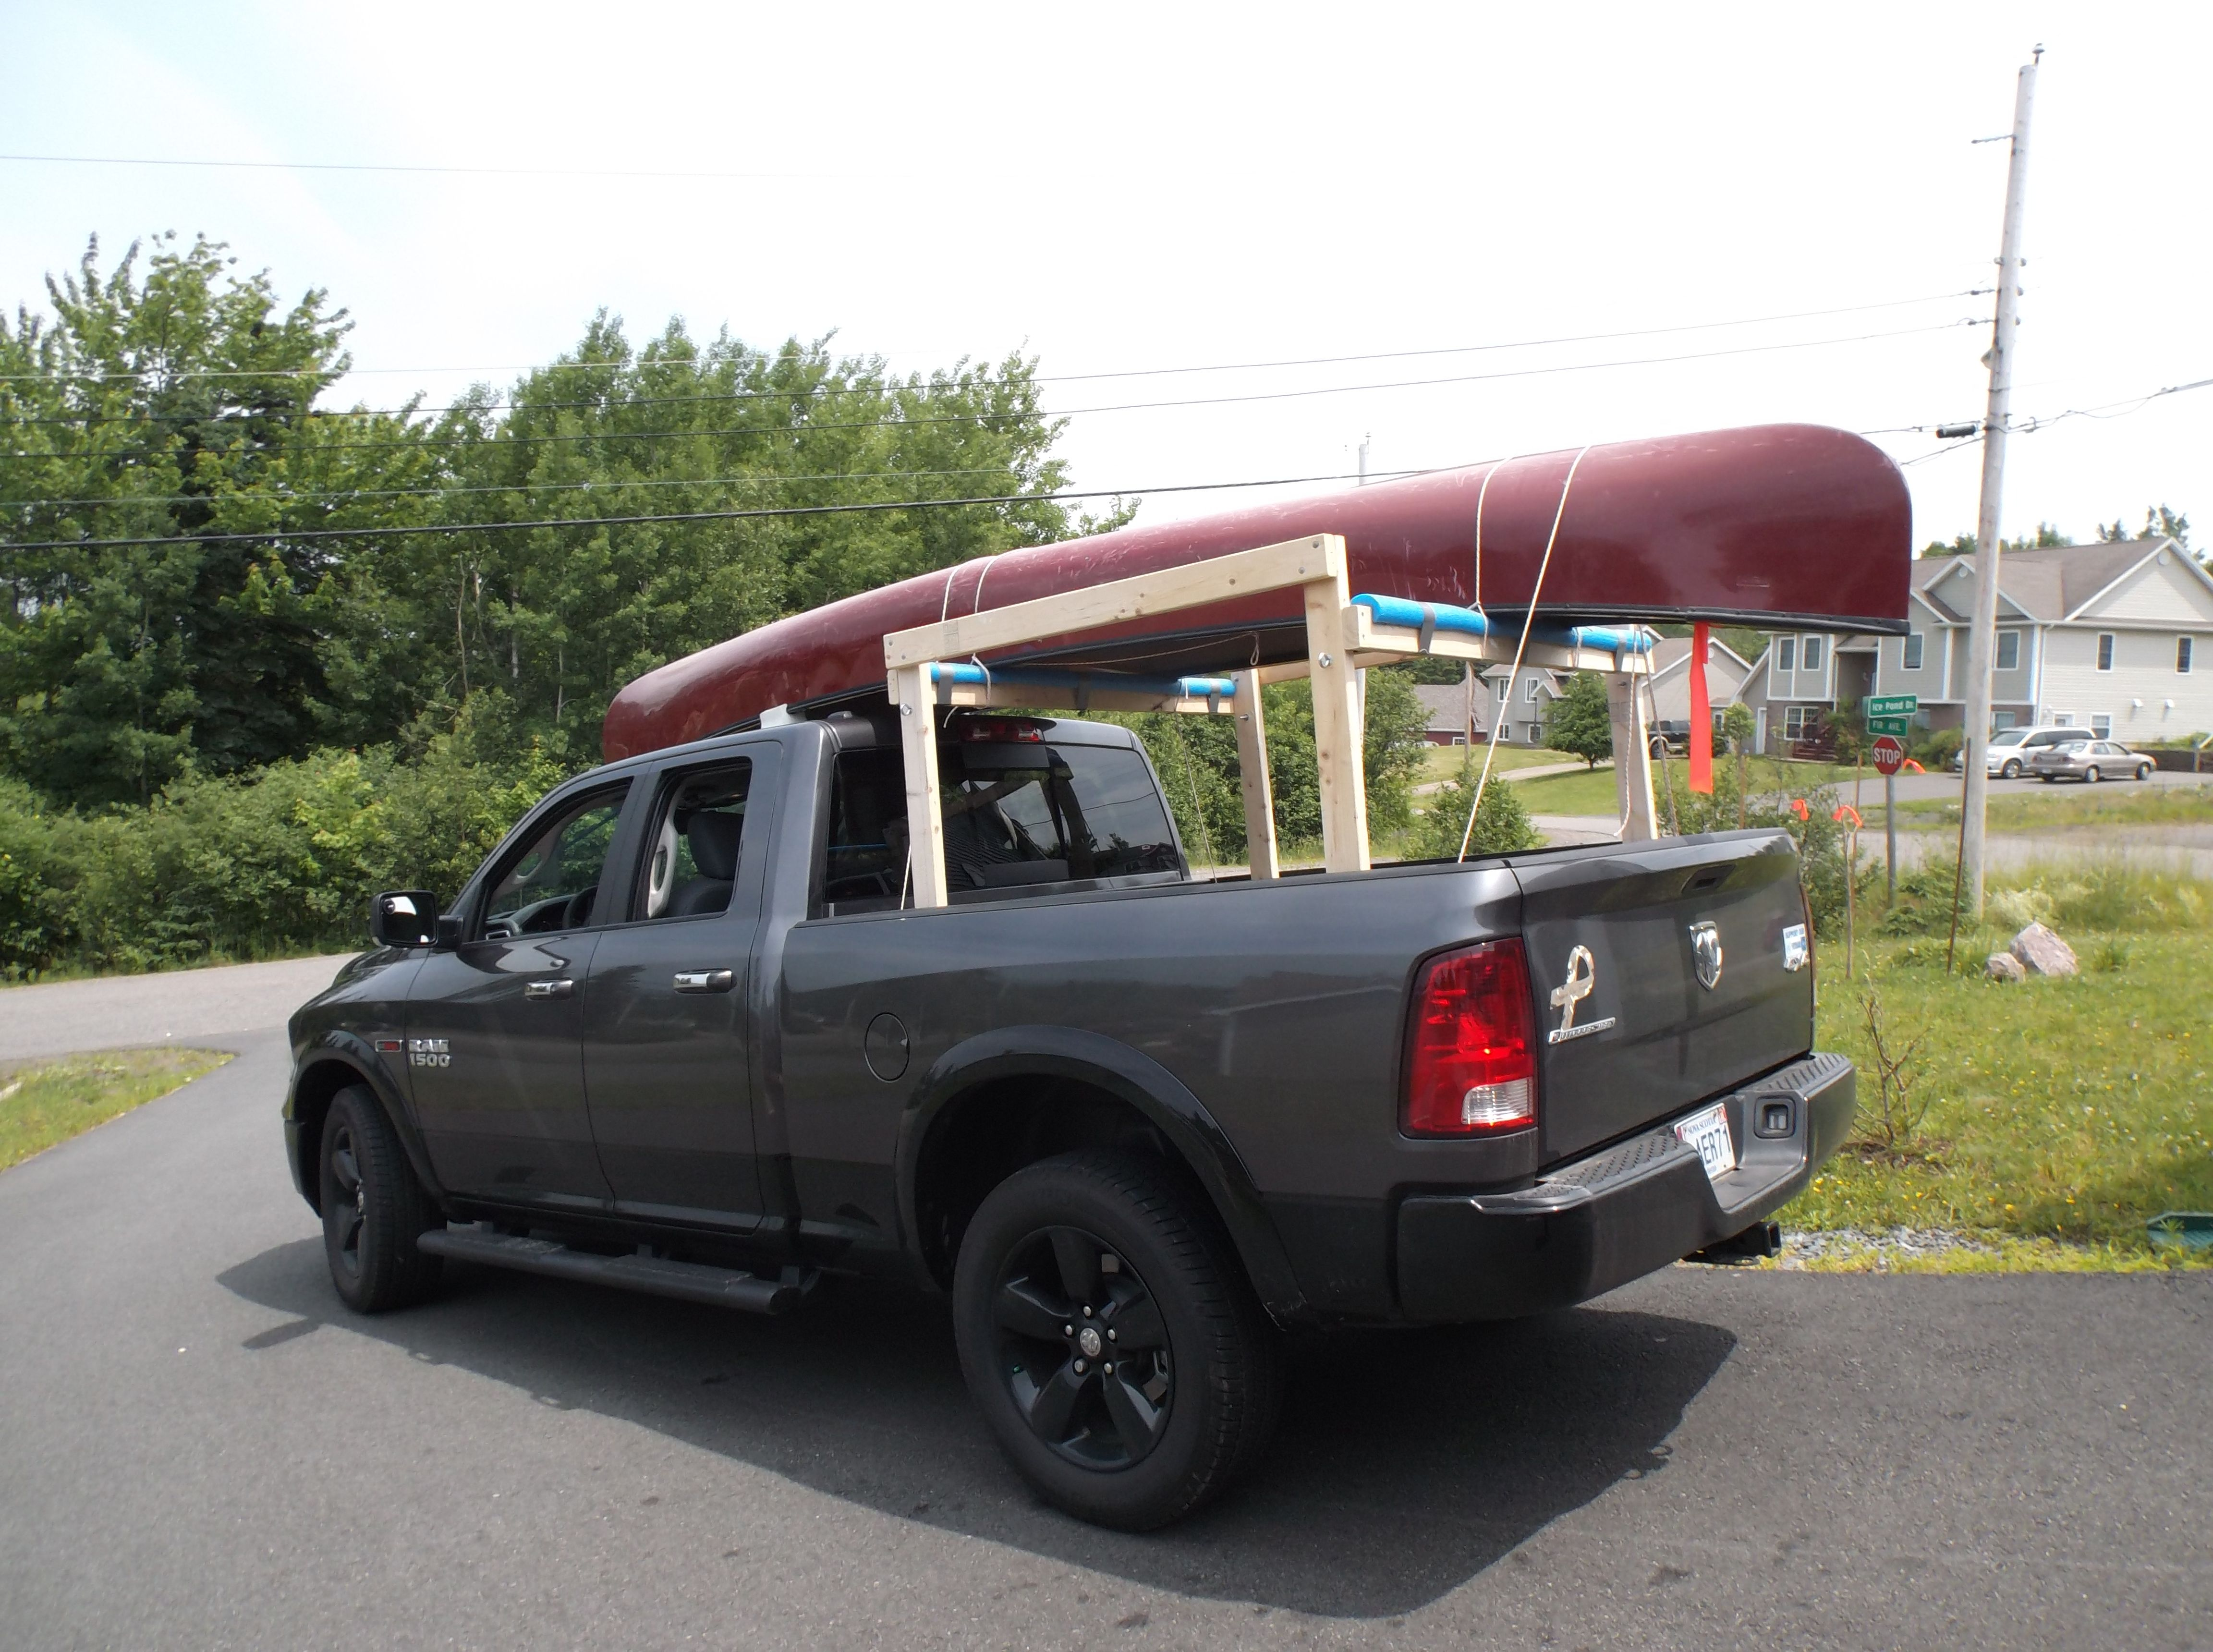 The Canoe Is Tied To The Rack And To The Tie Down Loops In